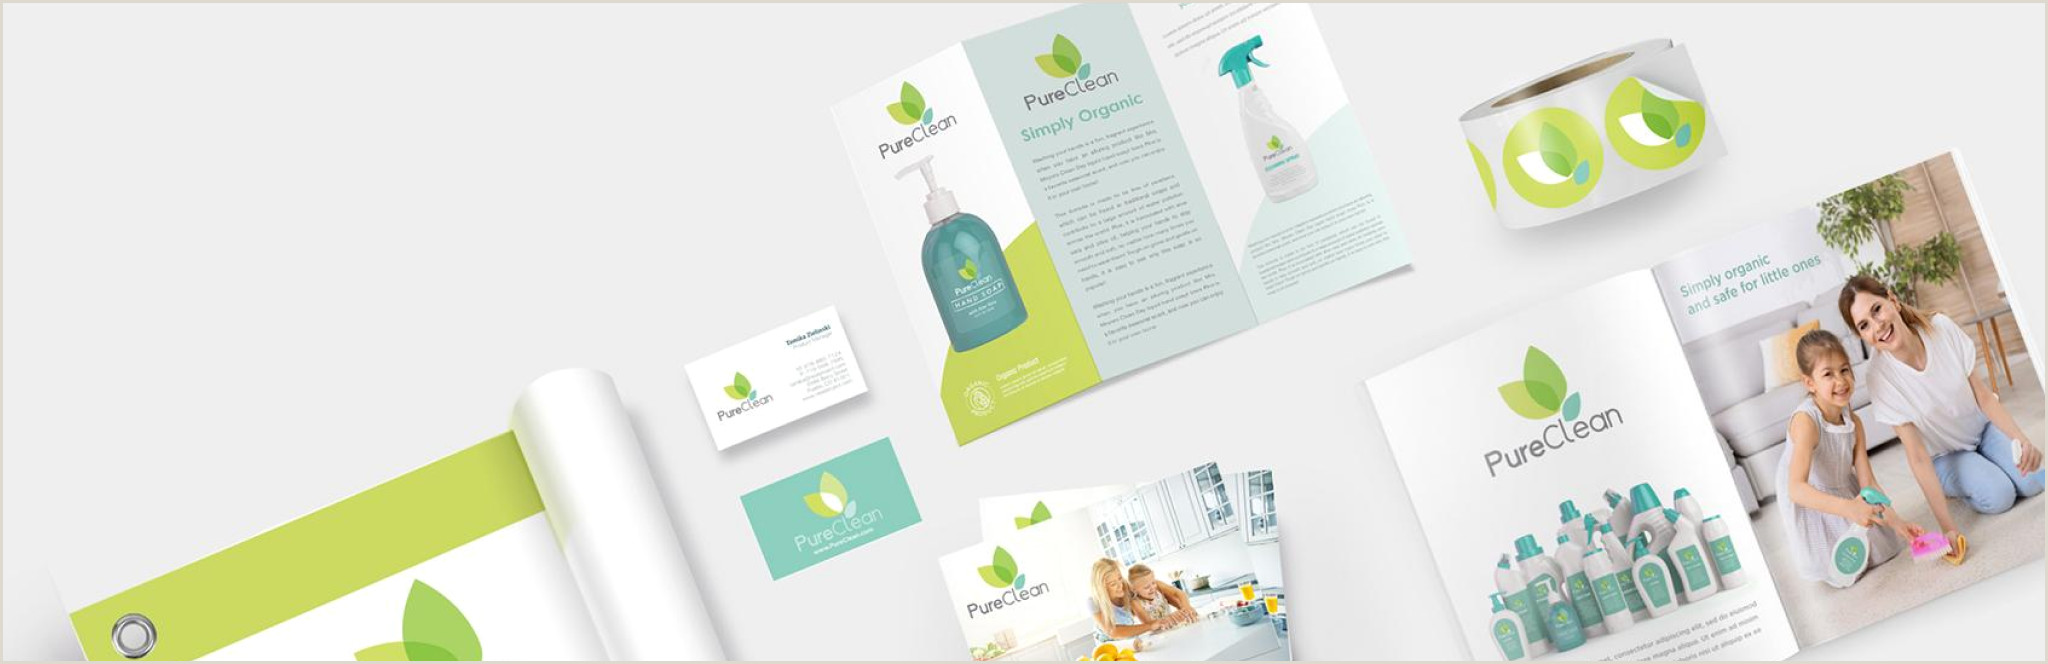 Thank You For Your Business Card Printplace High Quality Line Printing Services